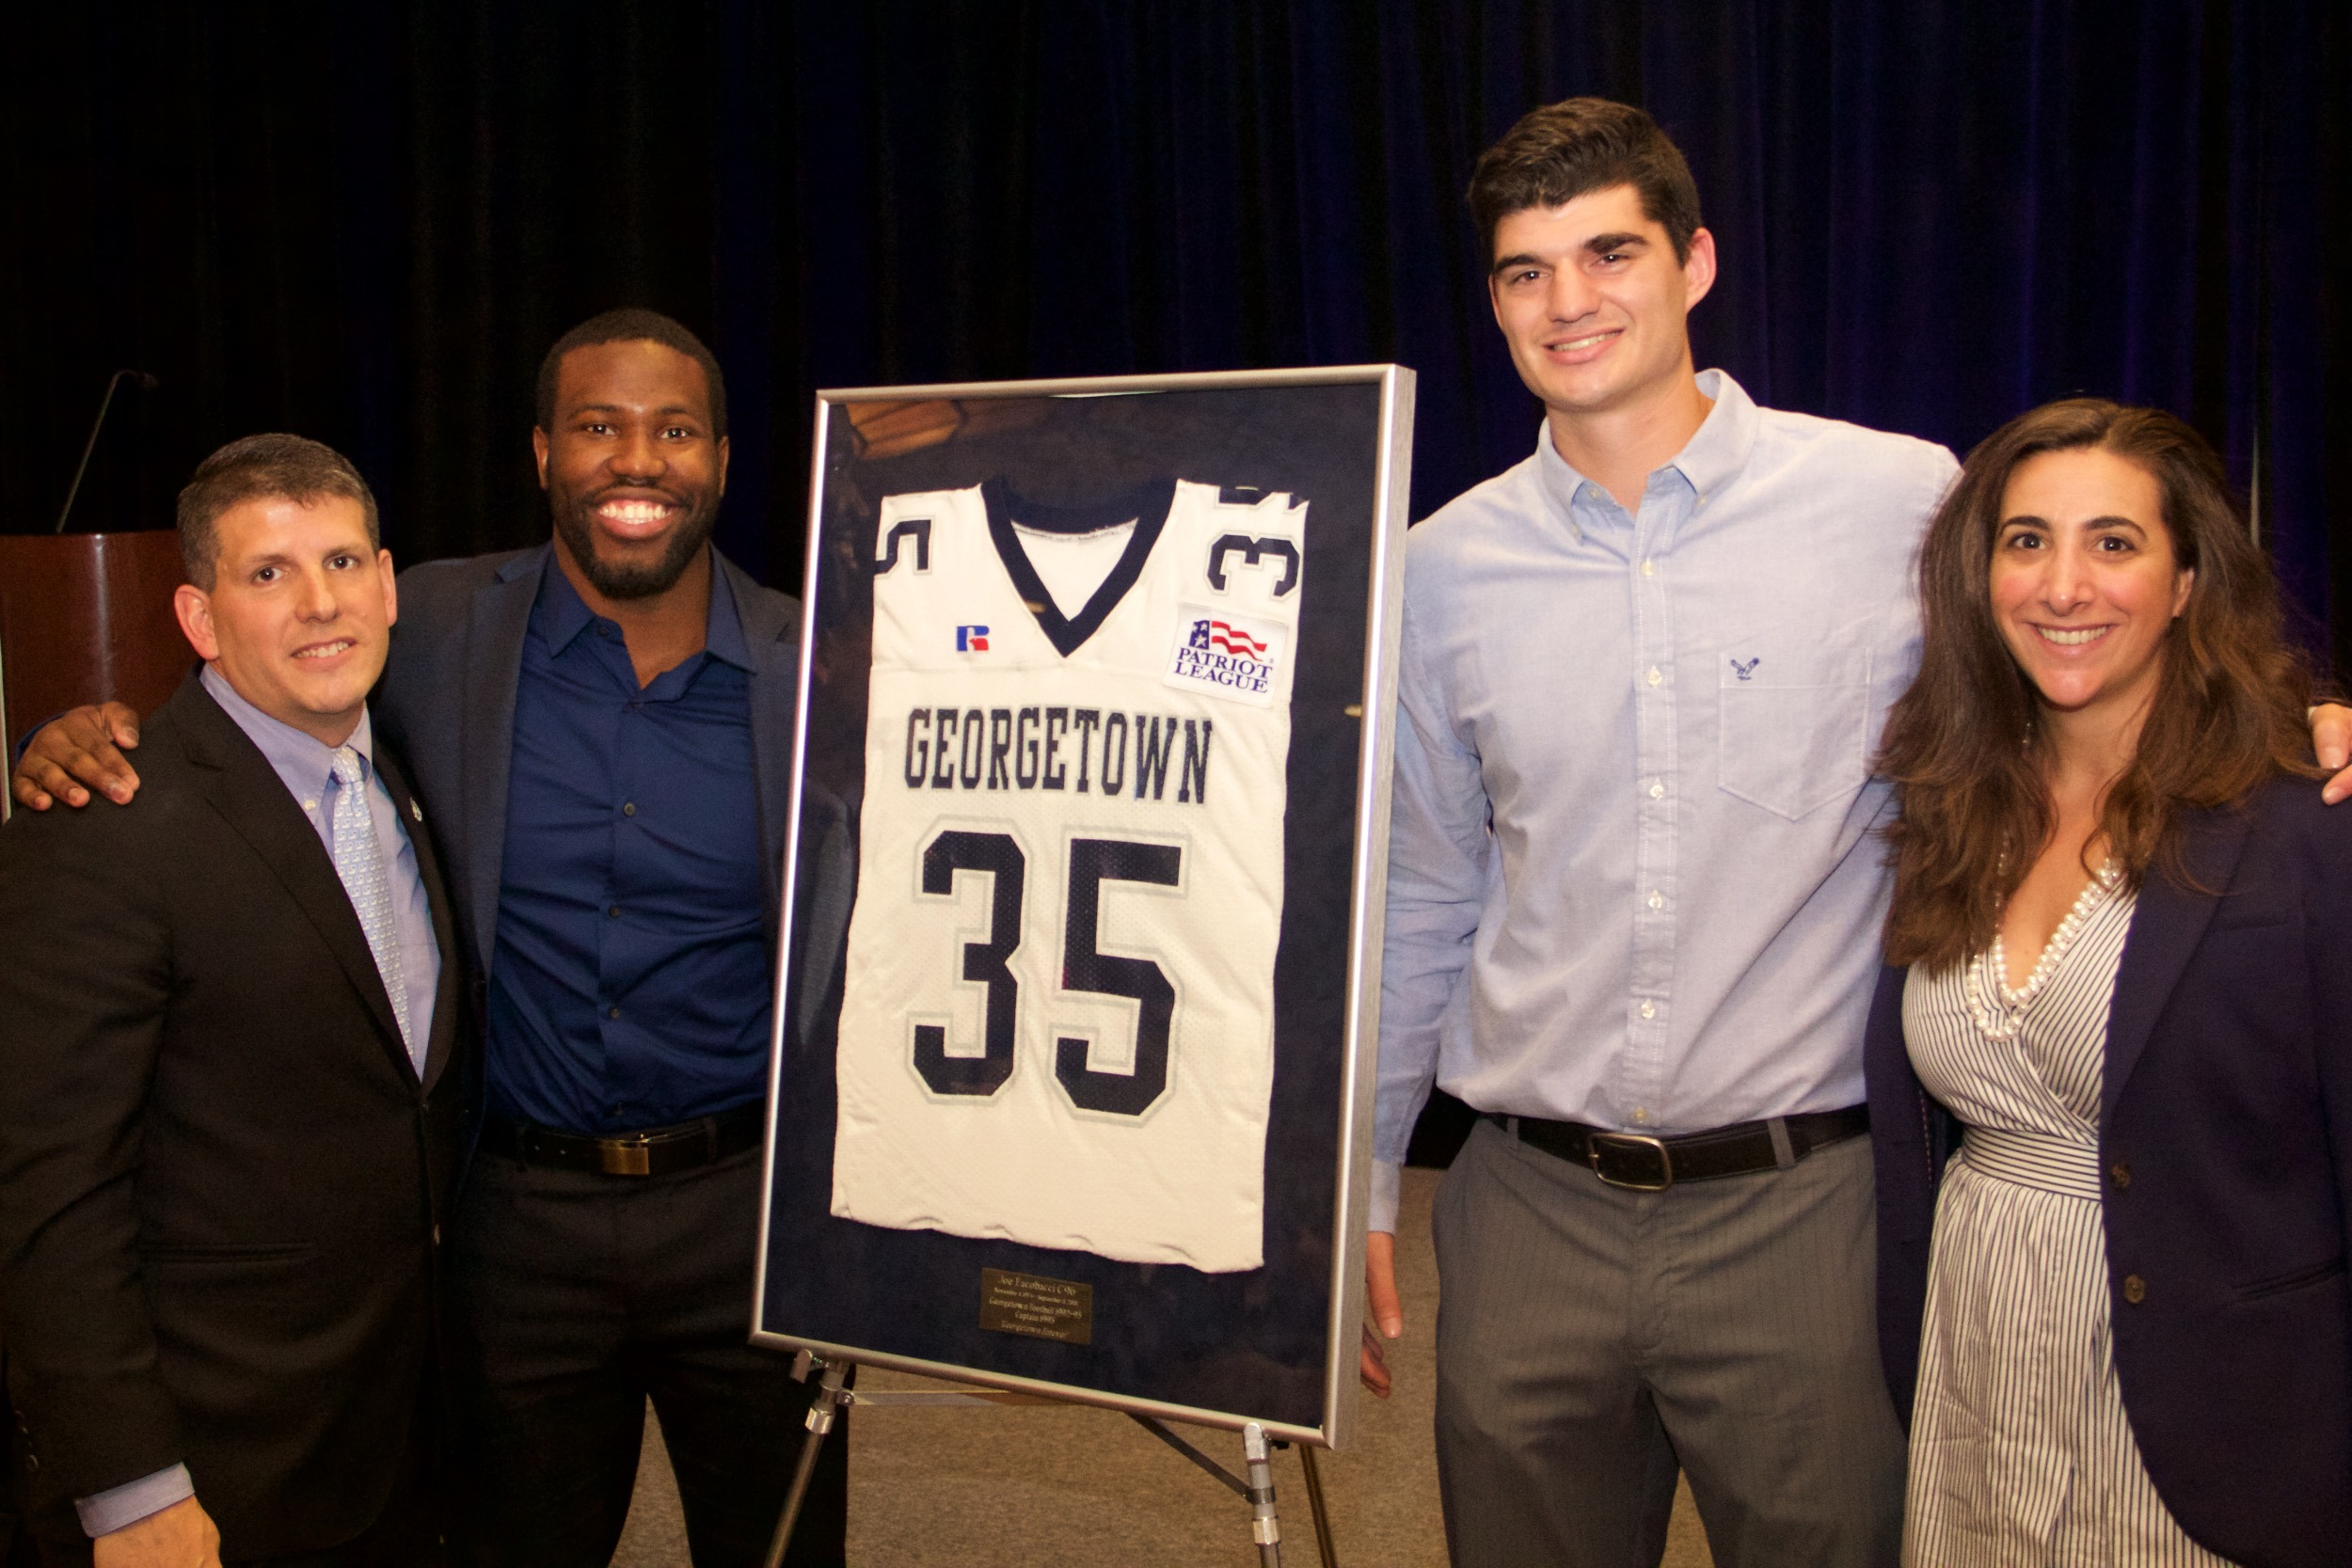 Tim Barnes was named the No. 35 Joe Eacobacci Memorial jersey recipient during Saturday's banquet.